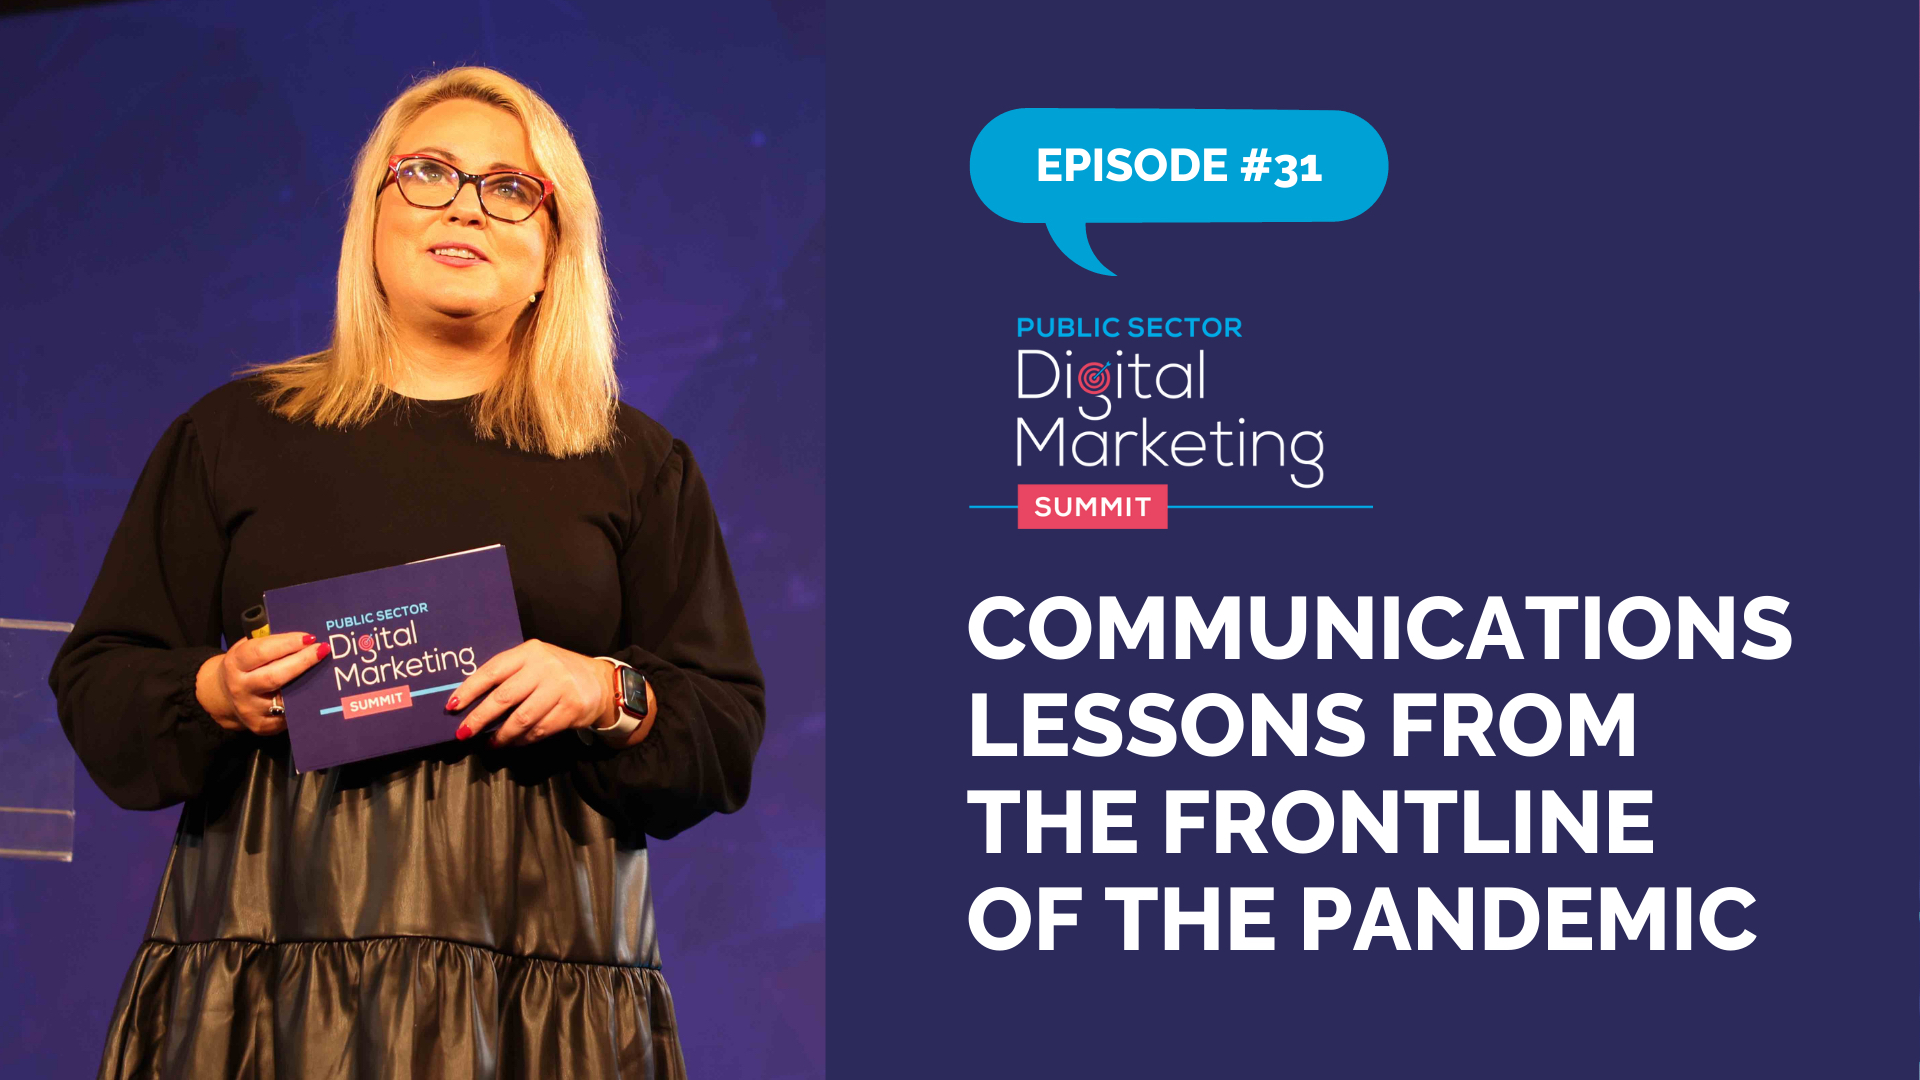 Public Sector Digital Marketing Summit | 10 Communications Lessons from the Frontline of the Pandemic